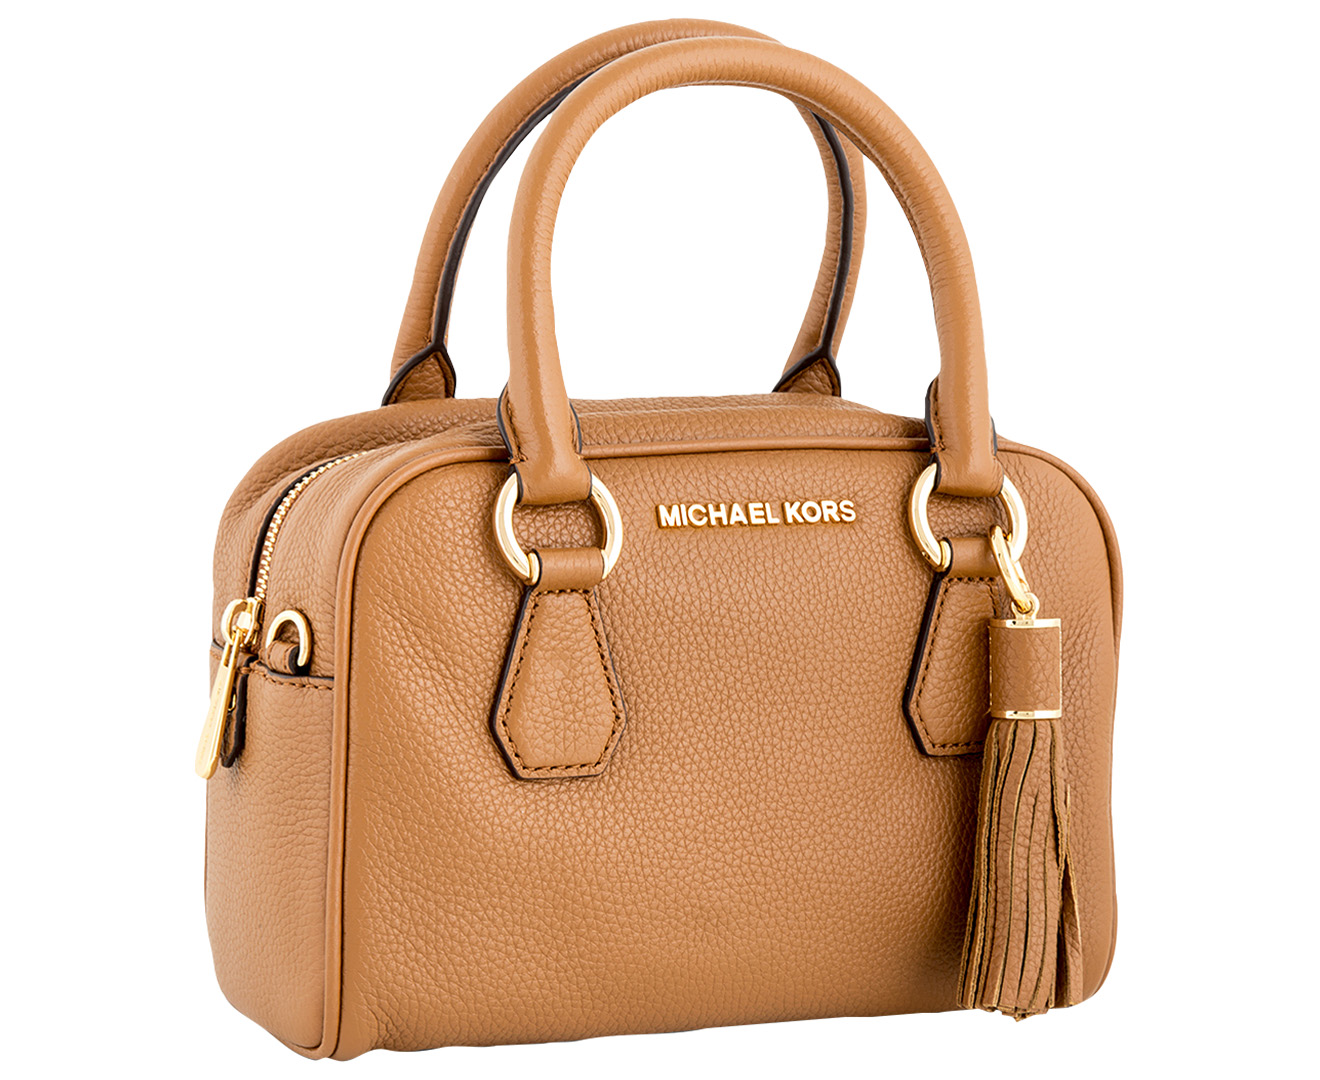 Browse all Michael Kors locations worldwide to find a store near you. Shop for jet set luxury: designer handbags, watches, shoes, men's and women's ready-to-wear & more.